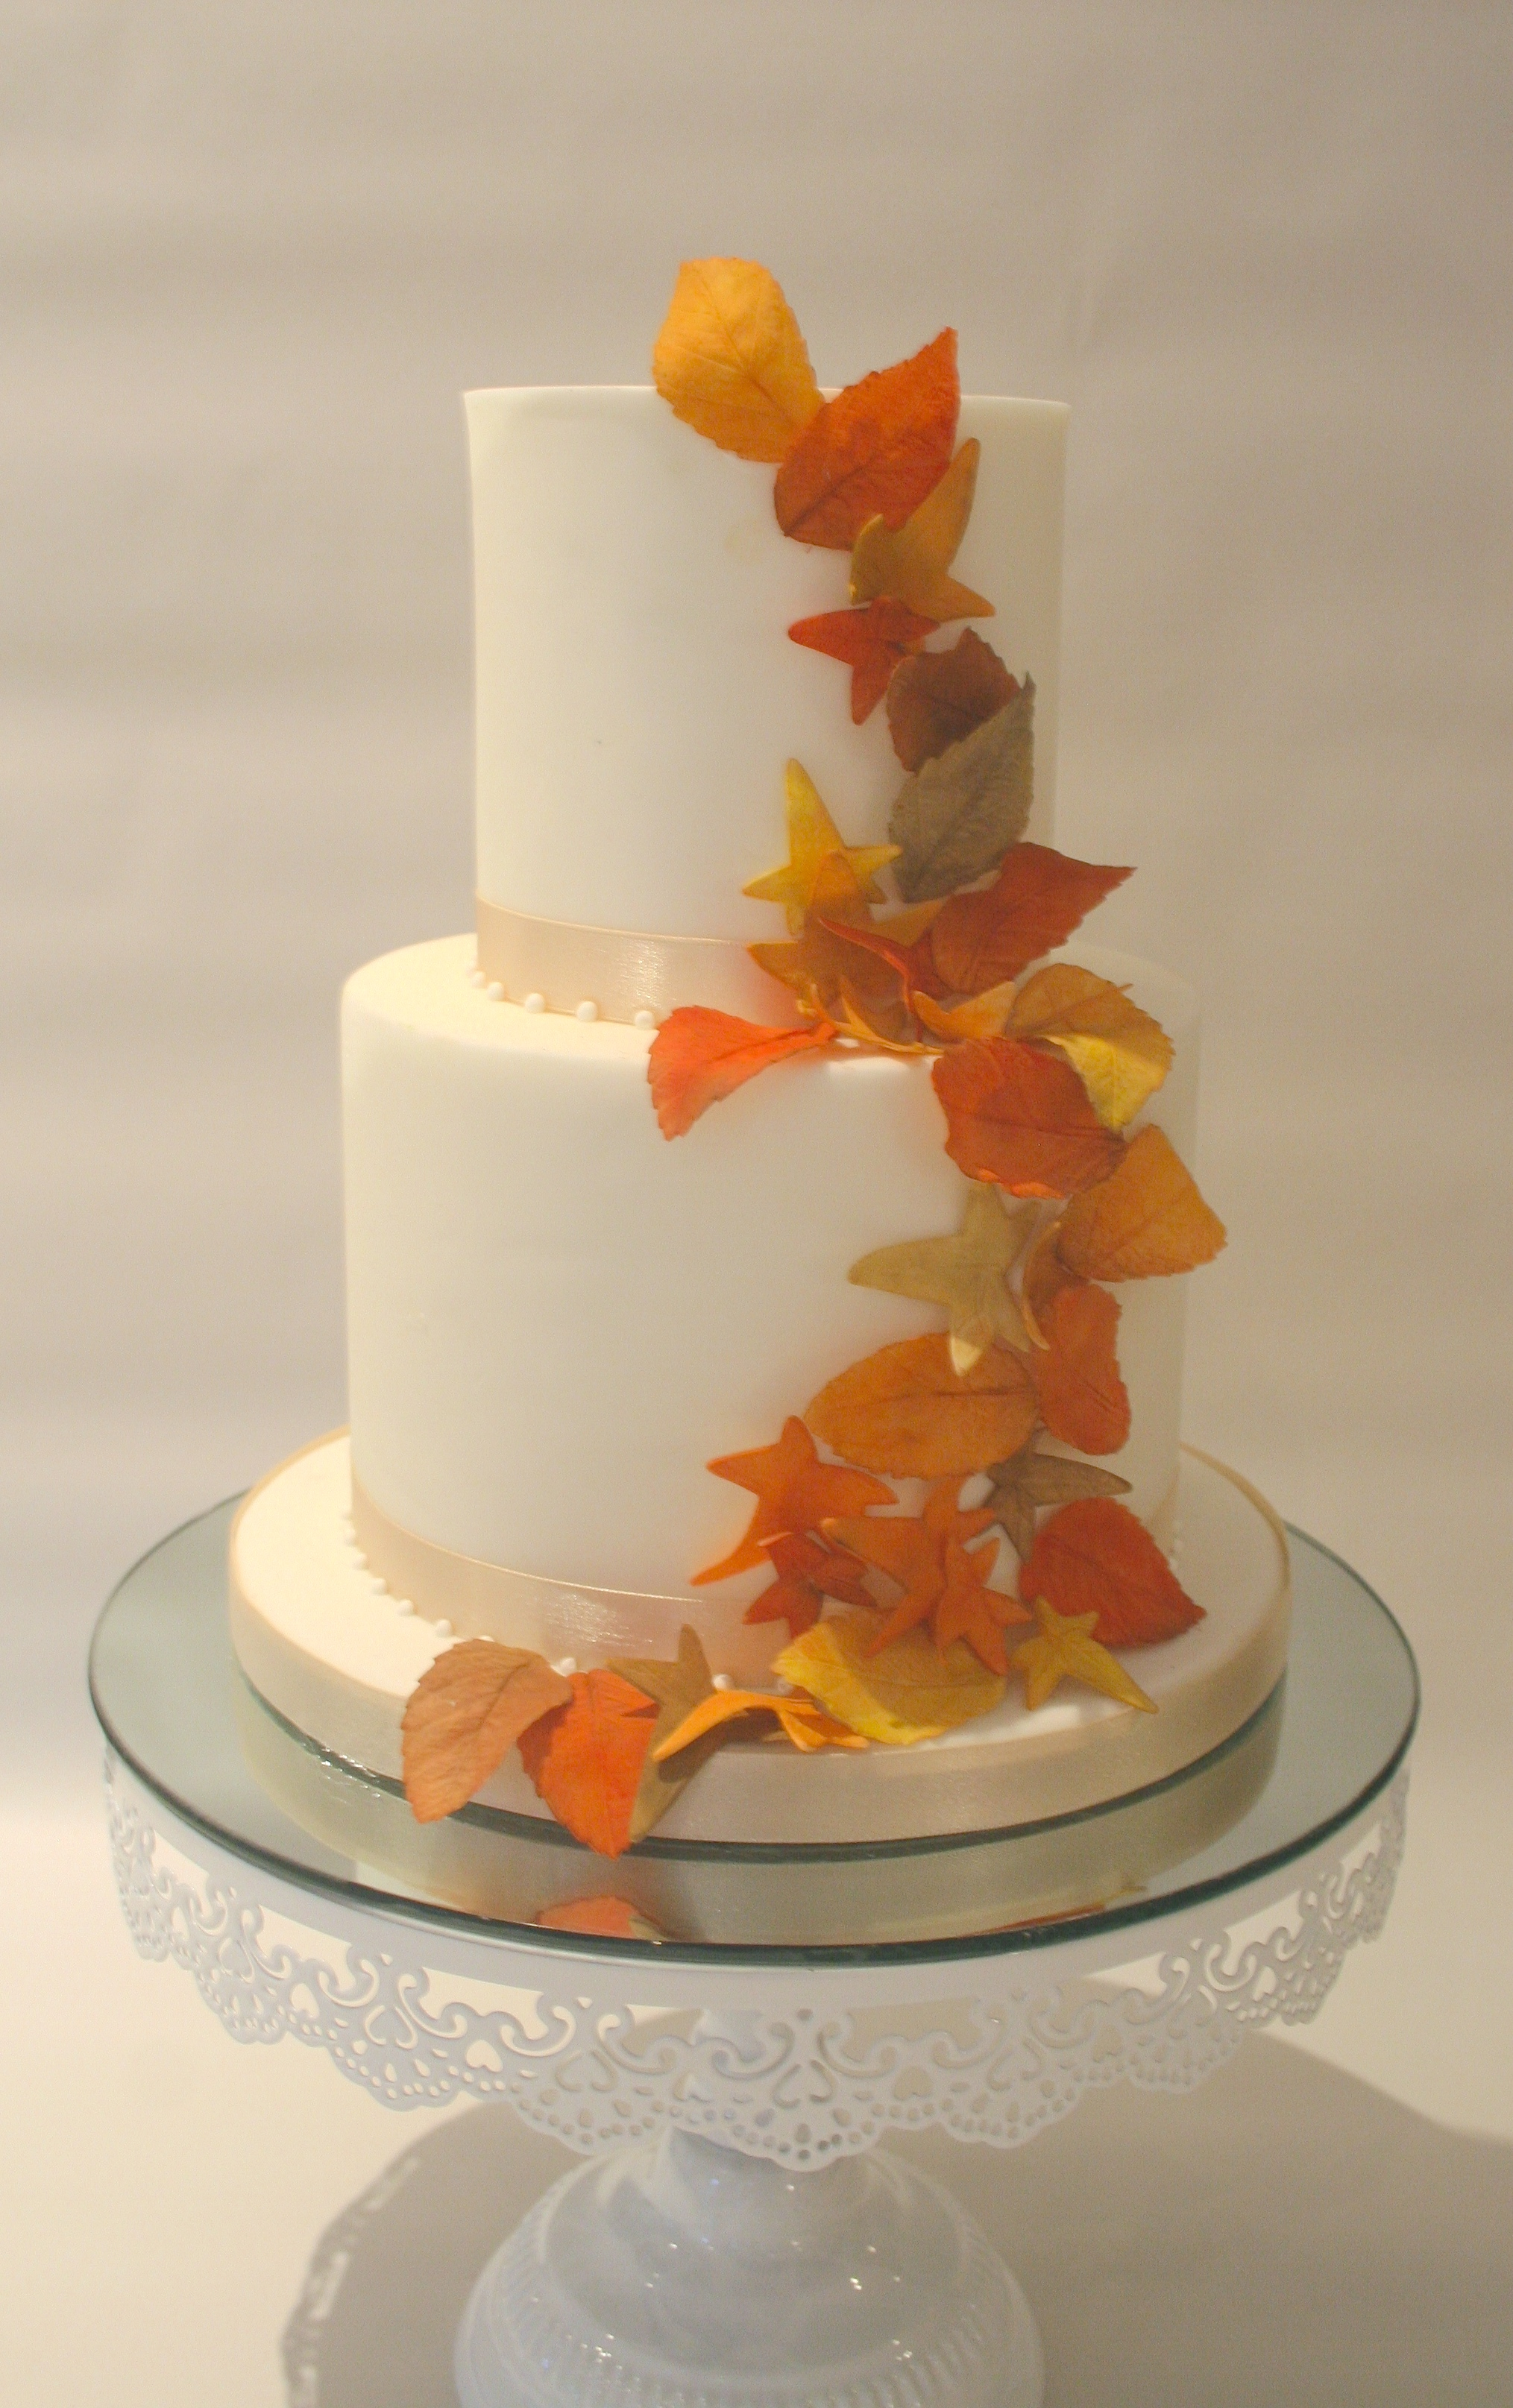 Autumn Leaves Cake